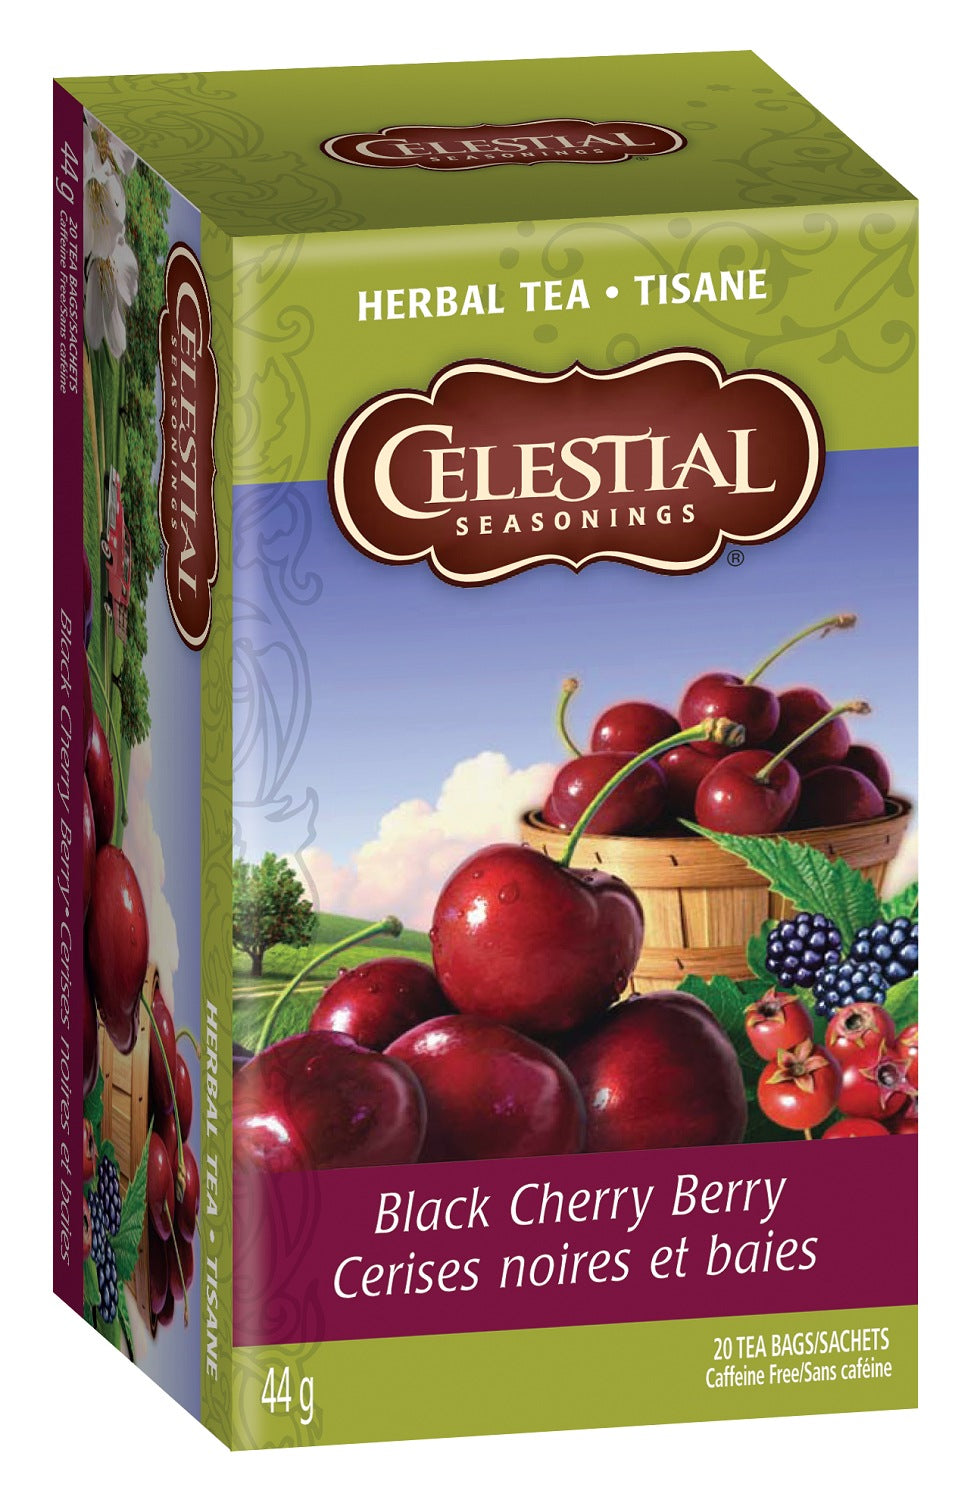 Food & Drink - Celestial Seasonings - Black Cherry Berry Herbal Tea, 20bags